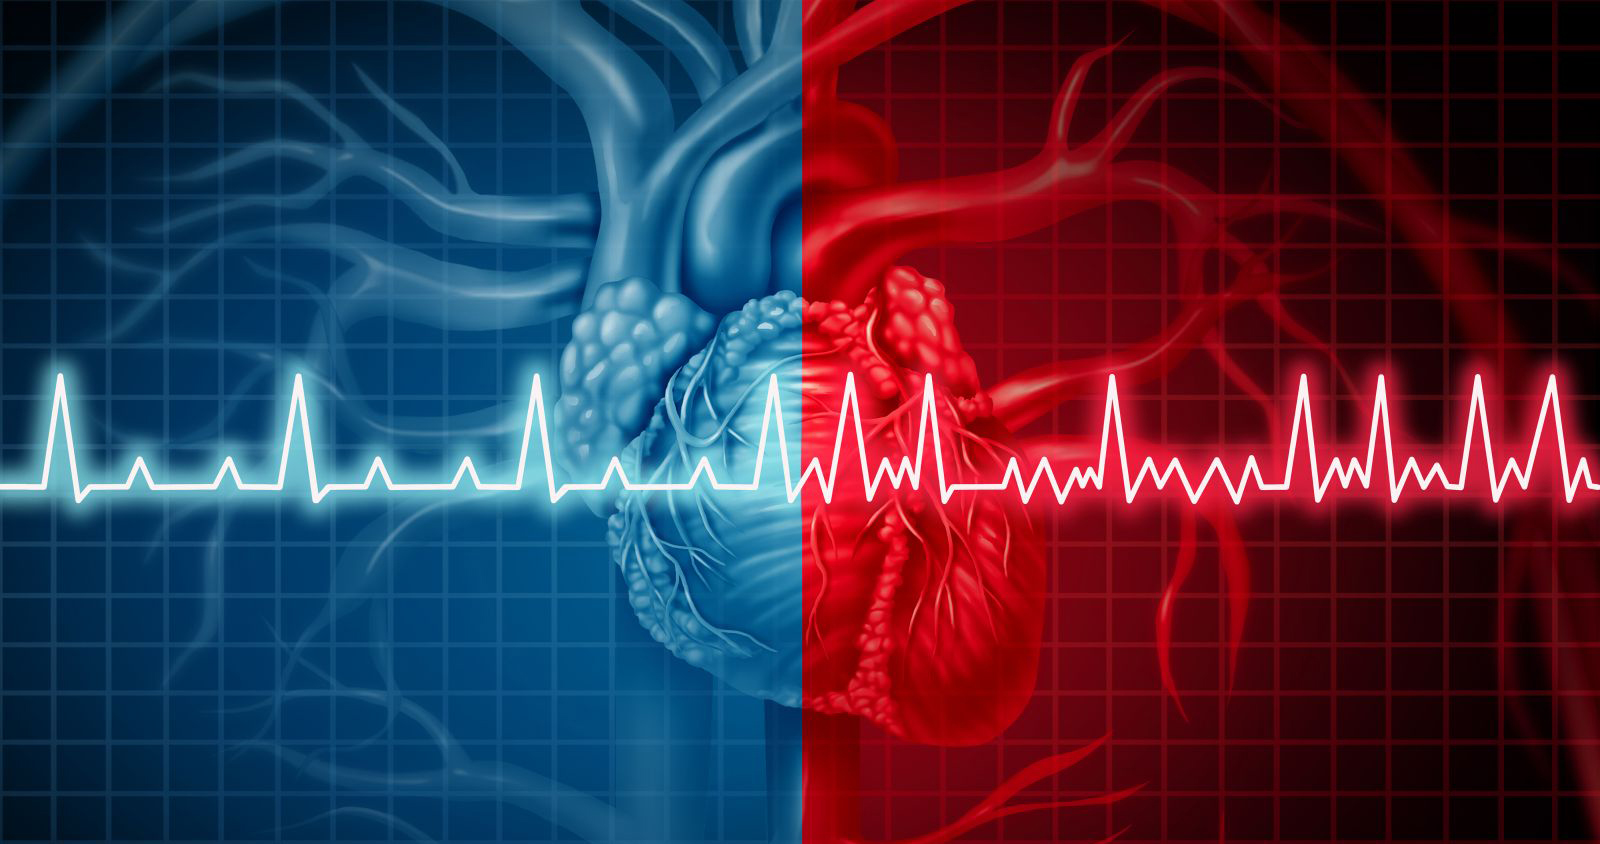 Does Atrial Fibrillation Cause Heart Failure?